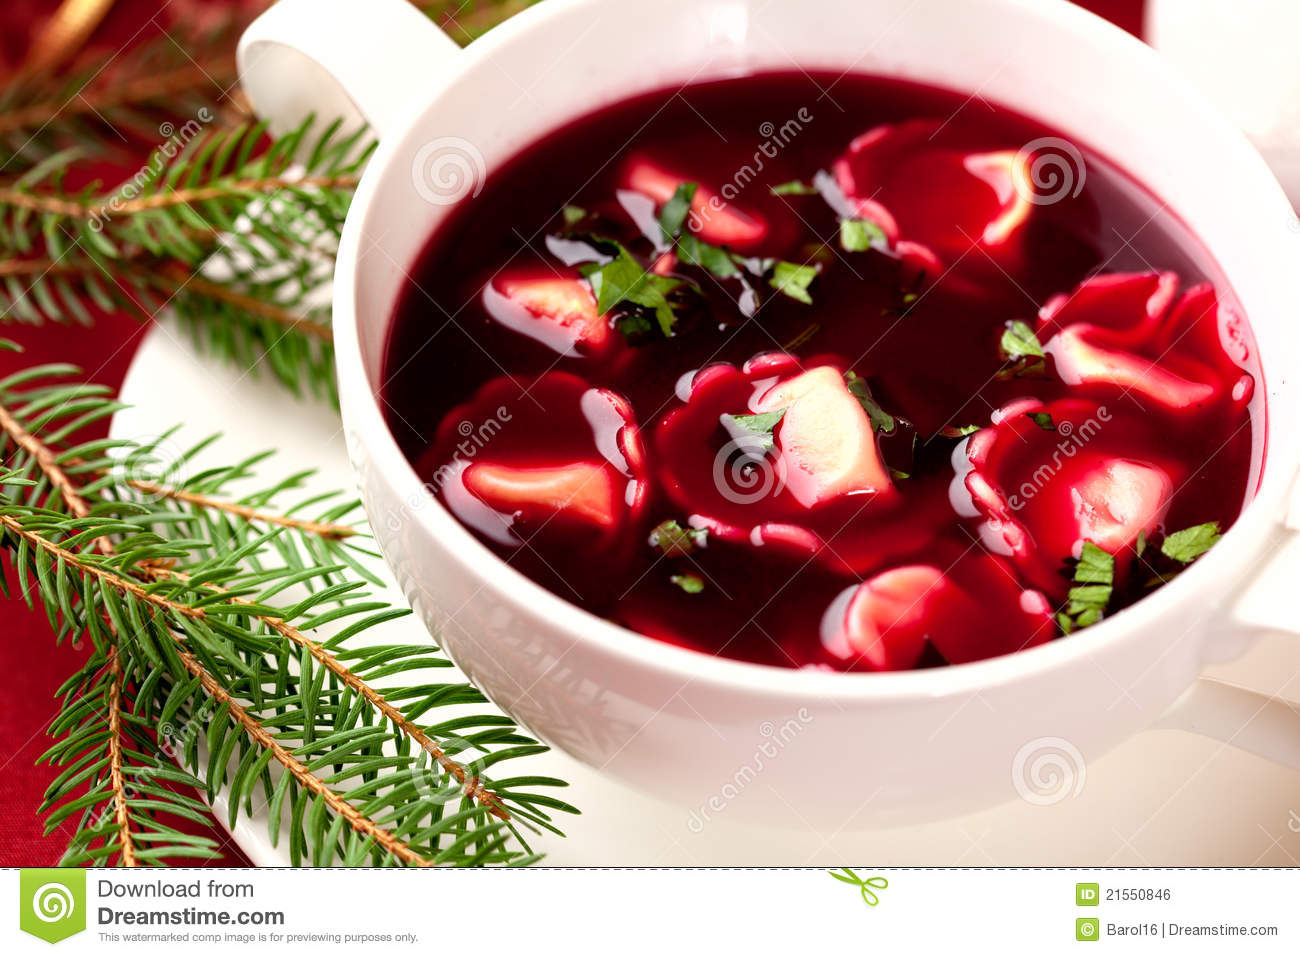 Weihnachtssuppe Stock Images - 24 Photos